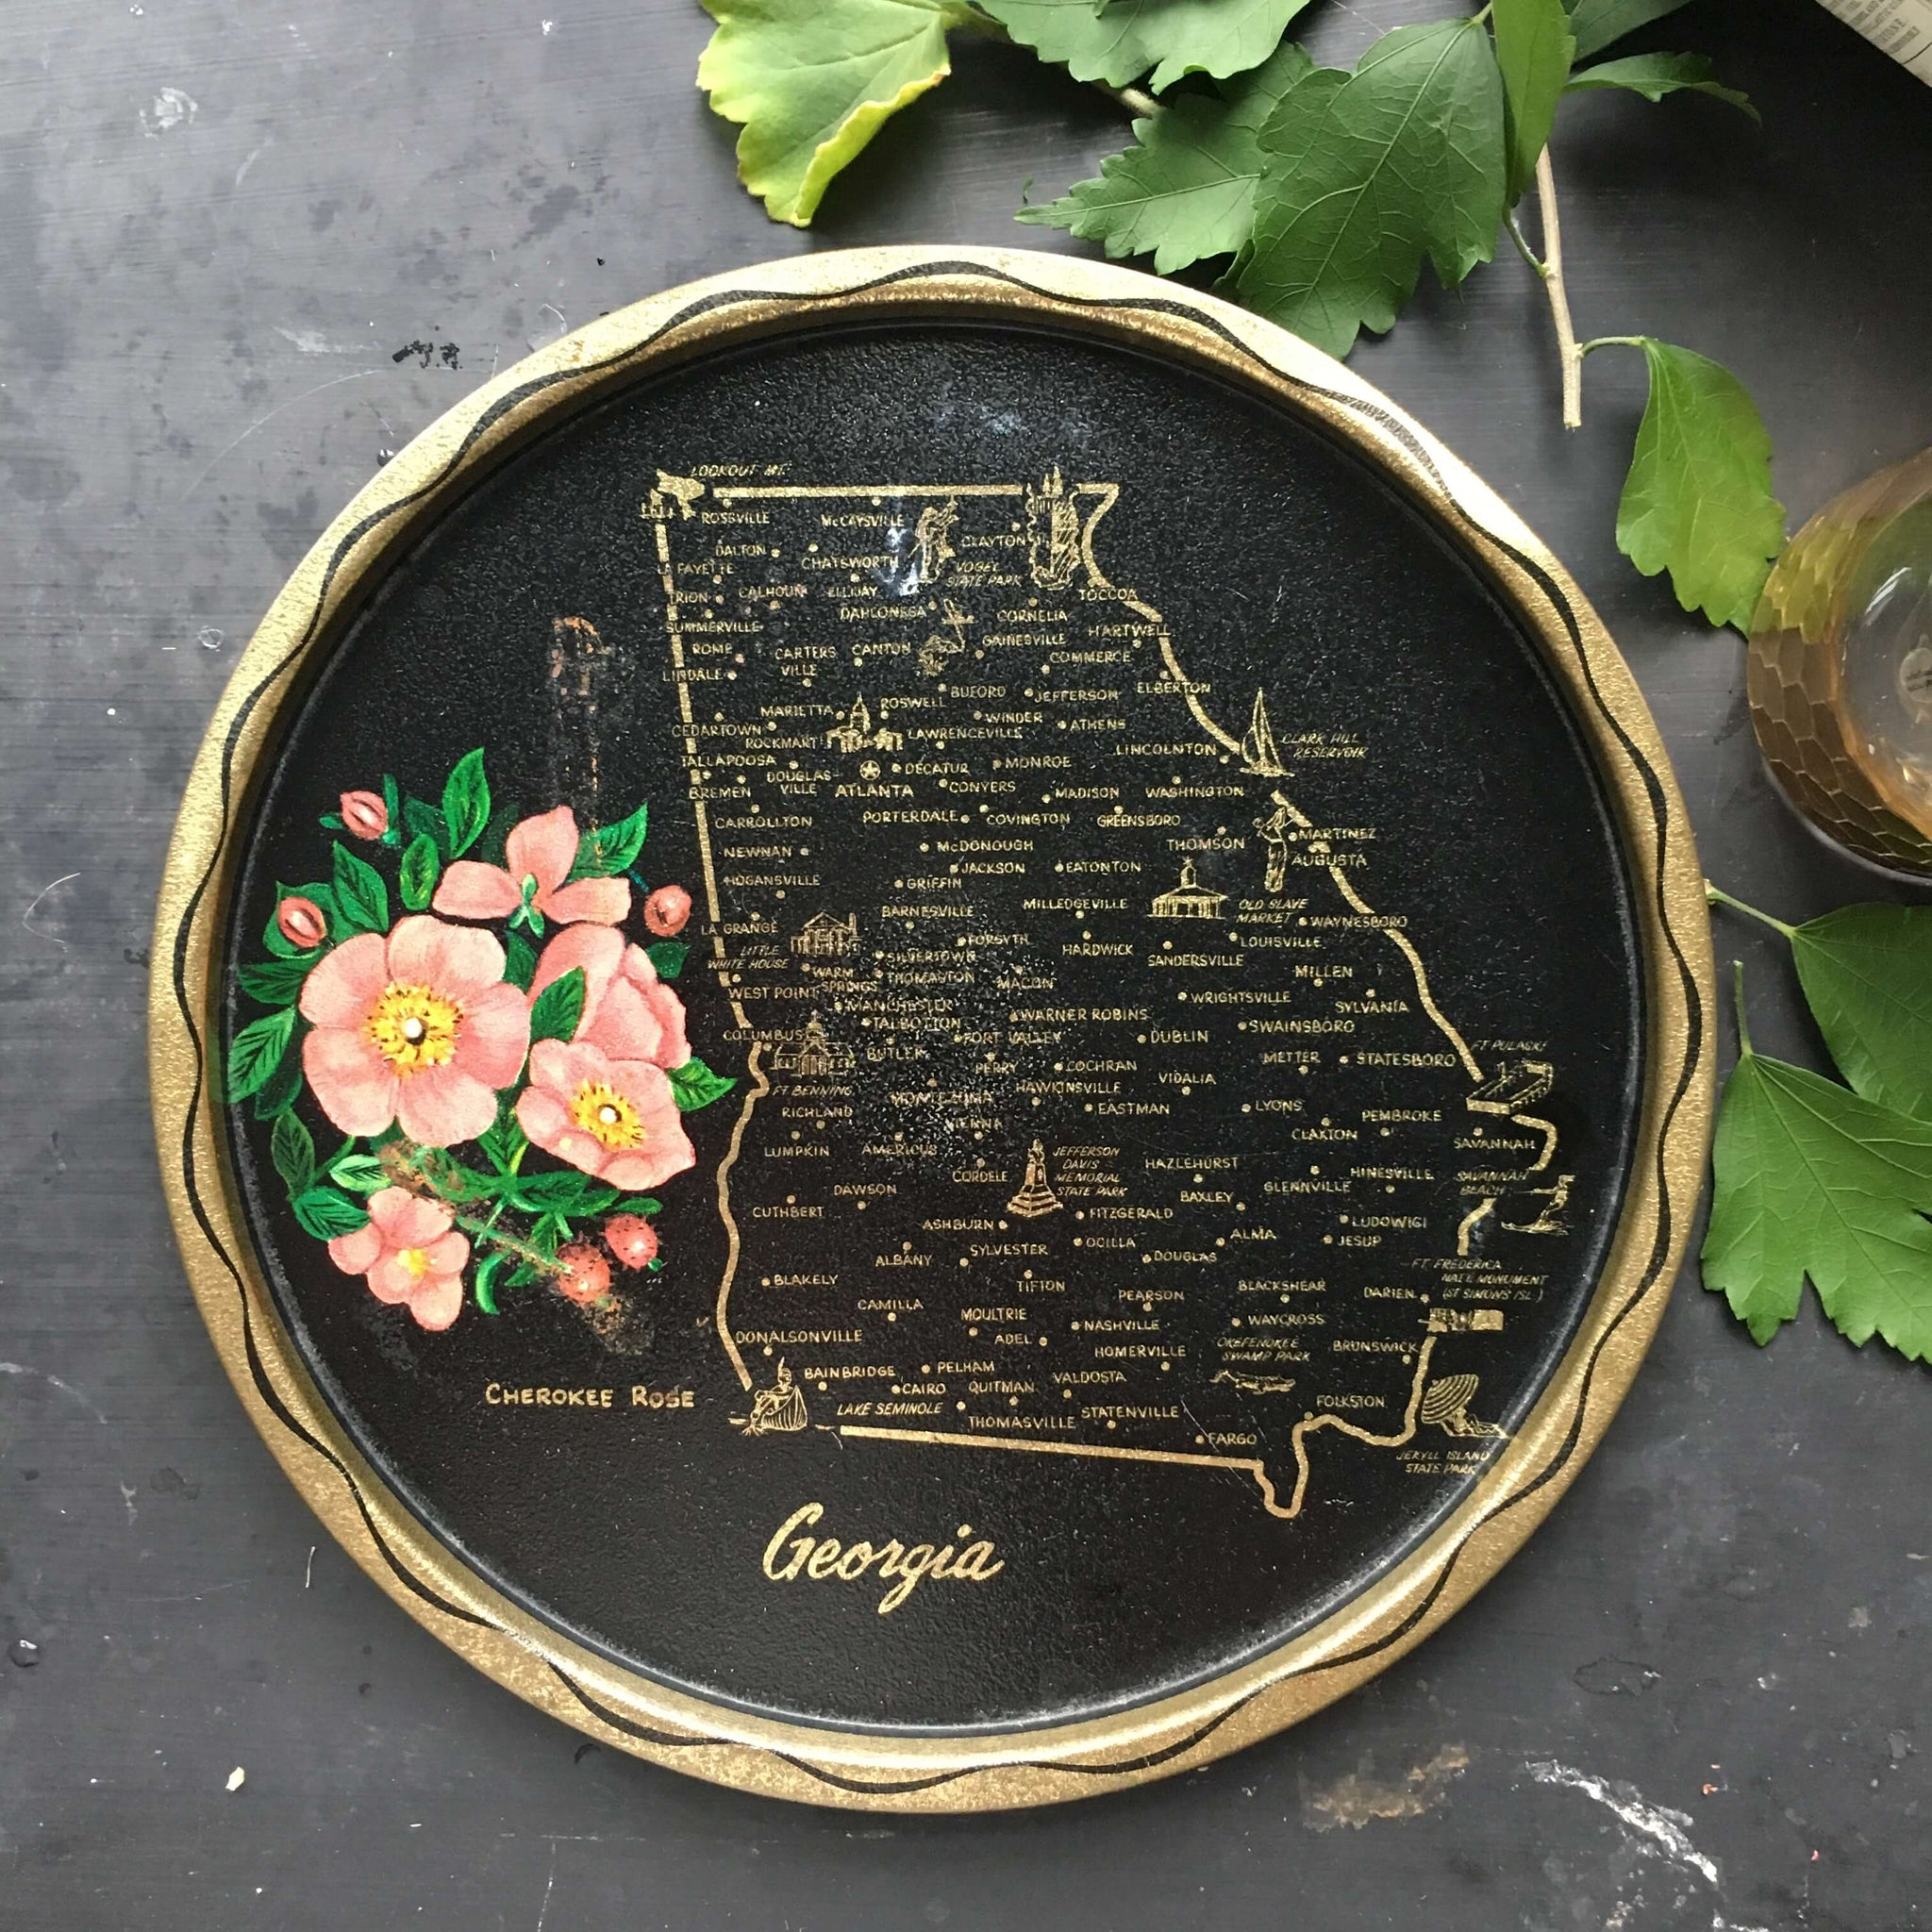 Vintage 1960's  Tin Tray - State of Georgia Travel Souvenir - Black and Gold Travel Collectibles